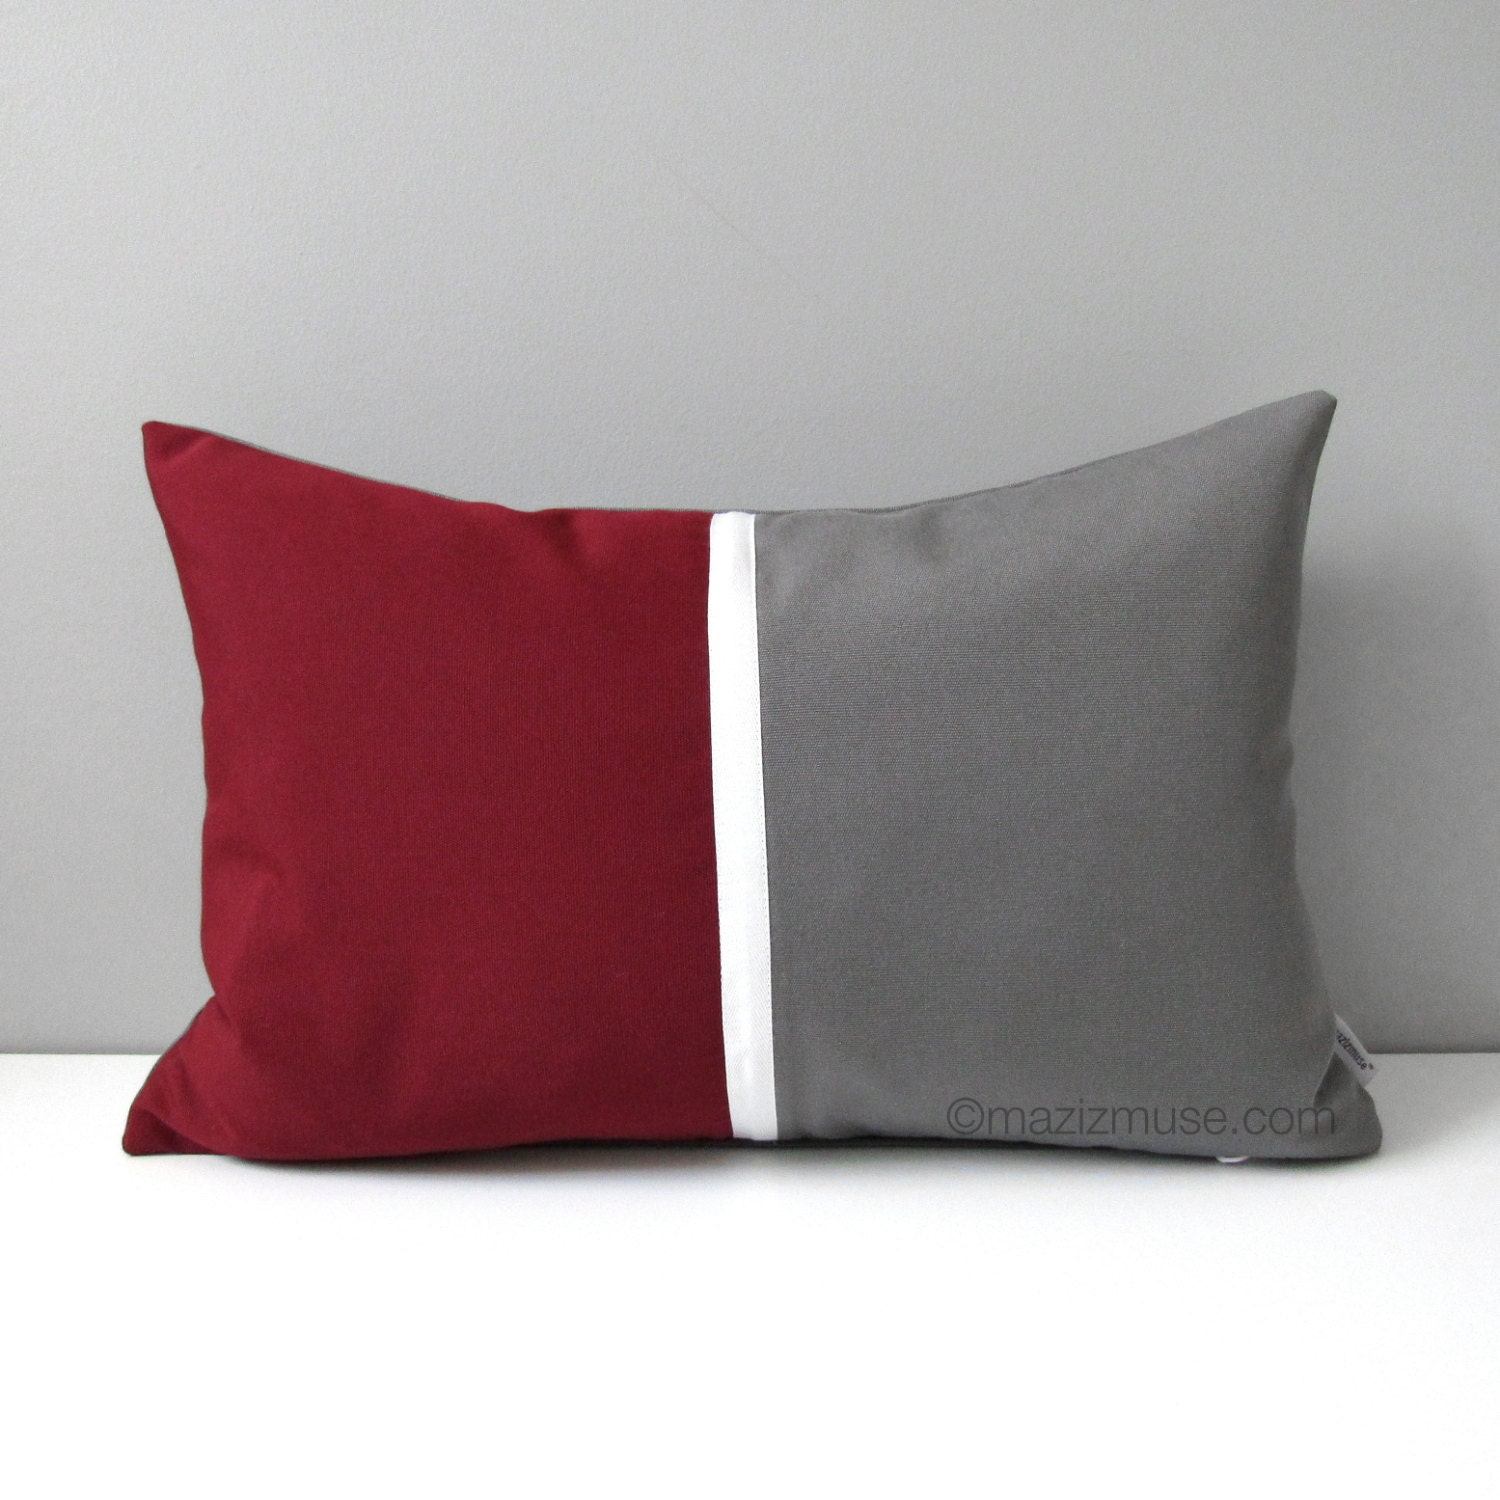 Burgundy & Grey Pillow Cover Modern Outdoor Pillow by Mazizmuse